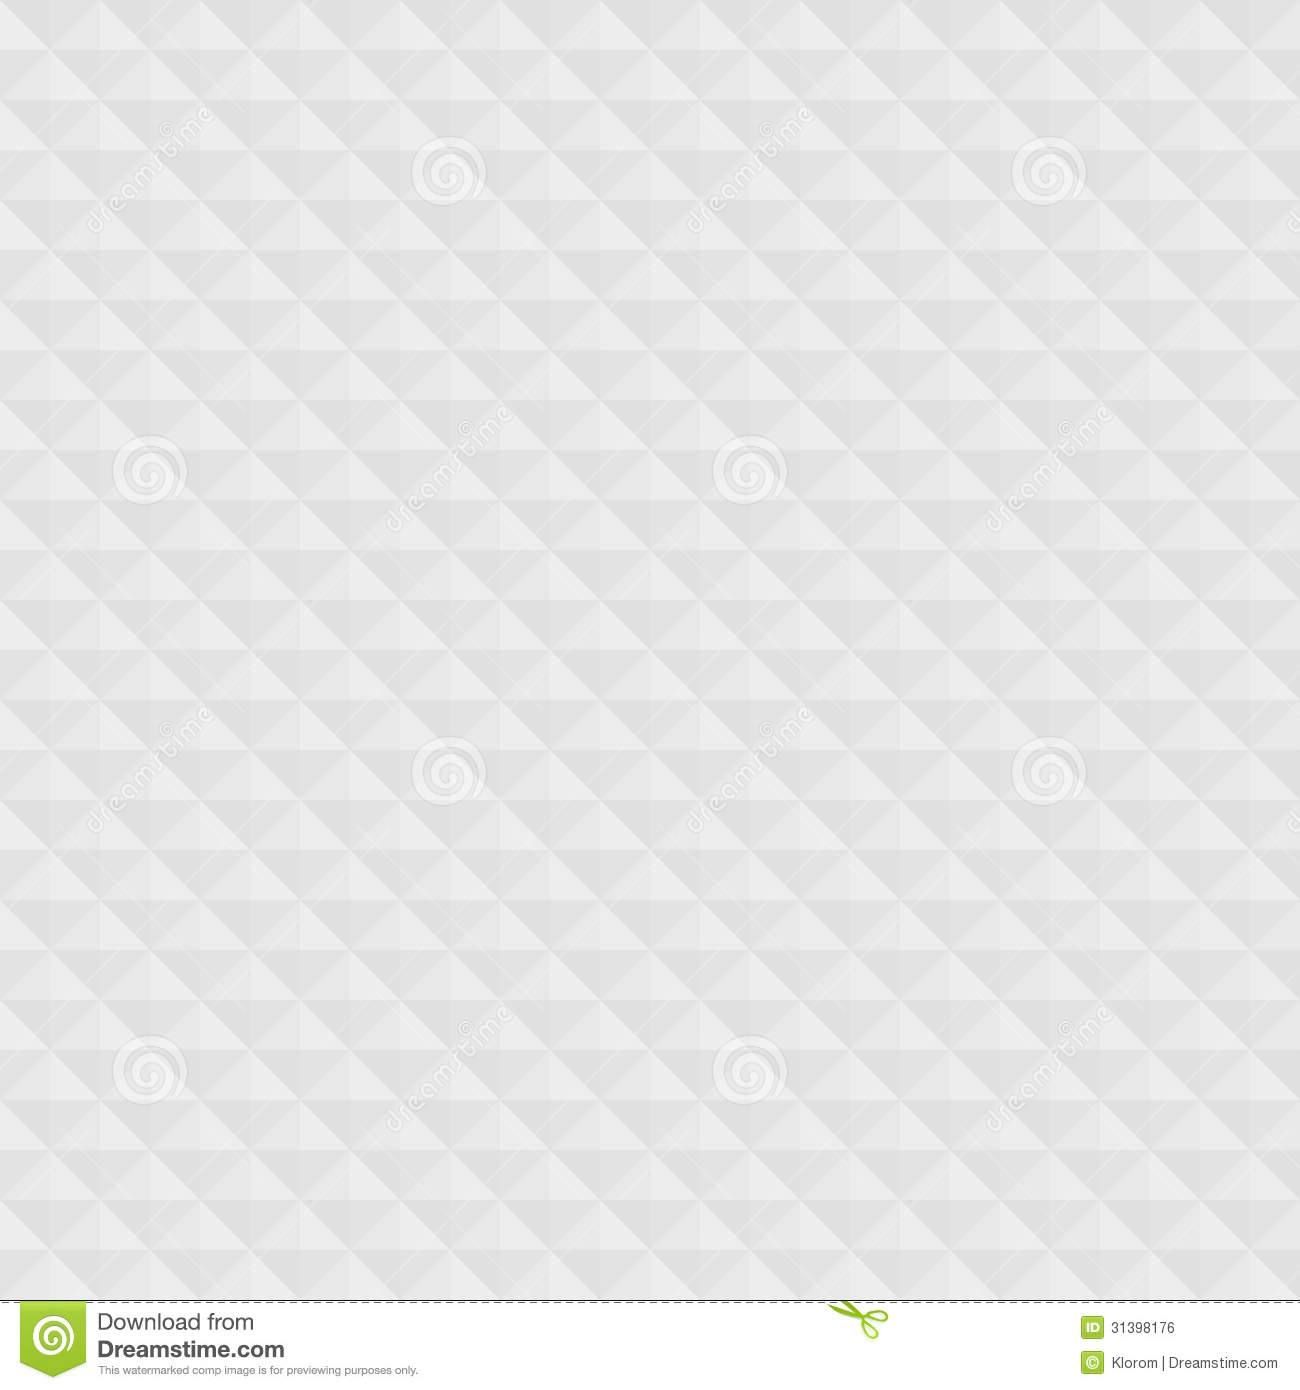 Simple Textured White Background Royalty Free Stock Image   Image